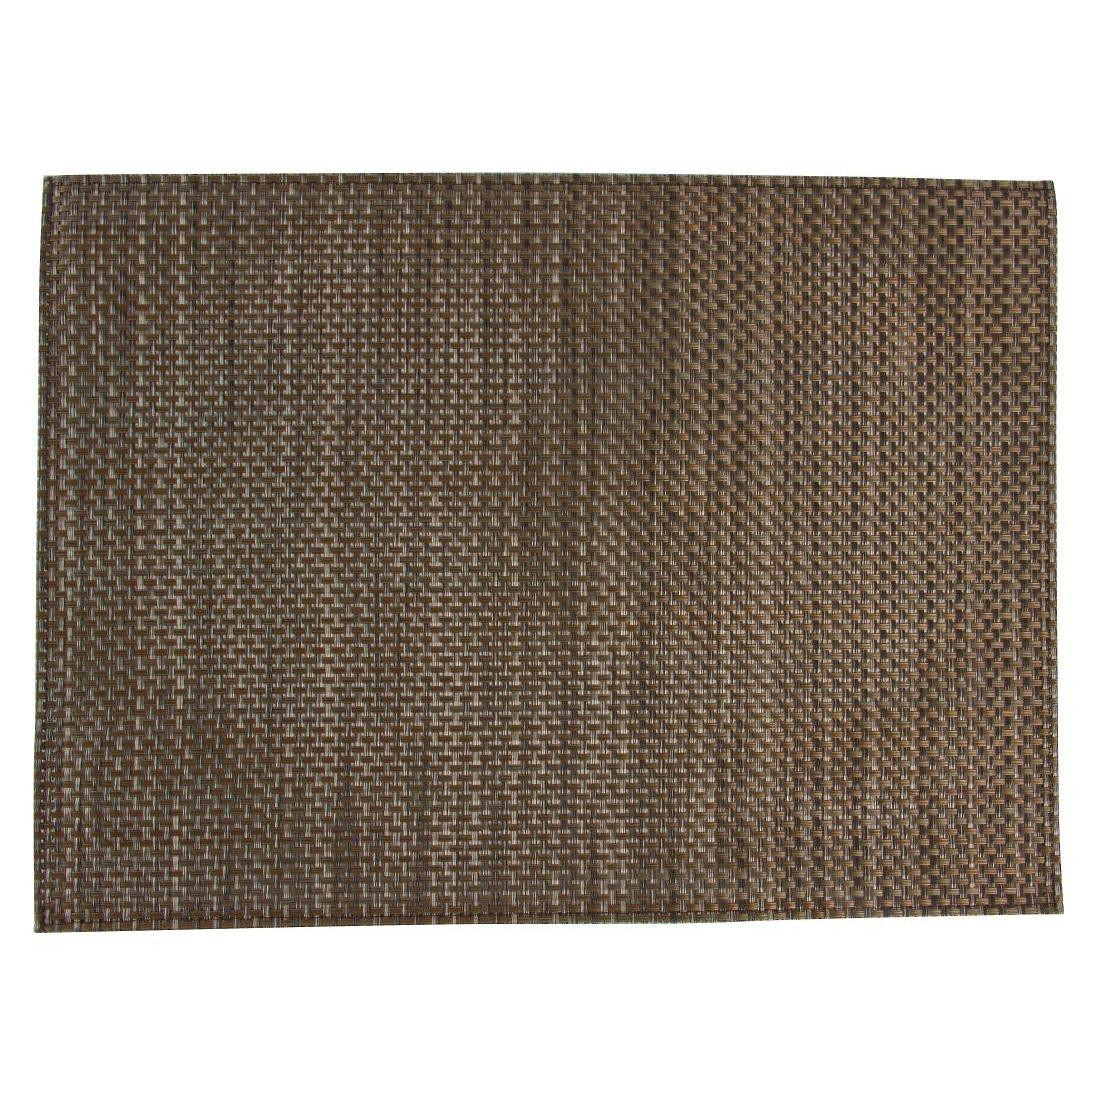 APS PVC placemat Beige And Brown - Case 6 - GJ996